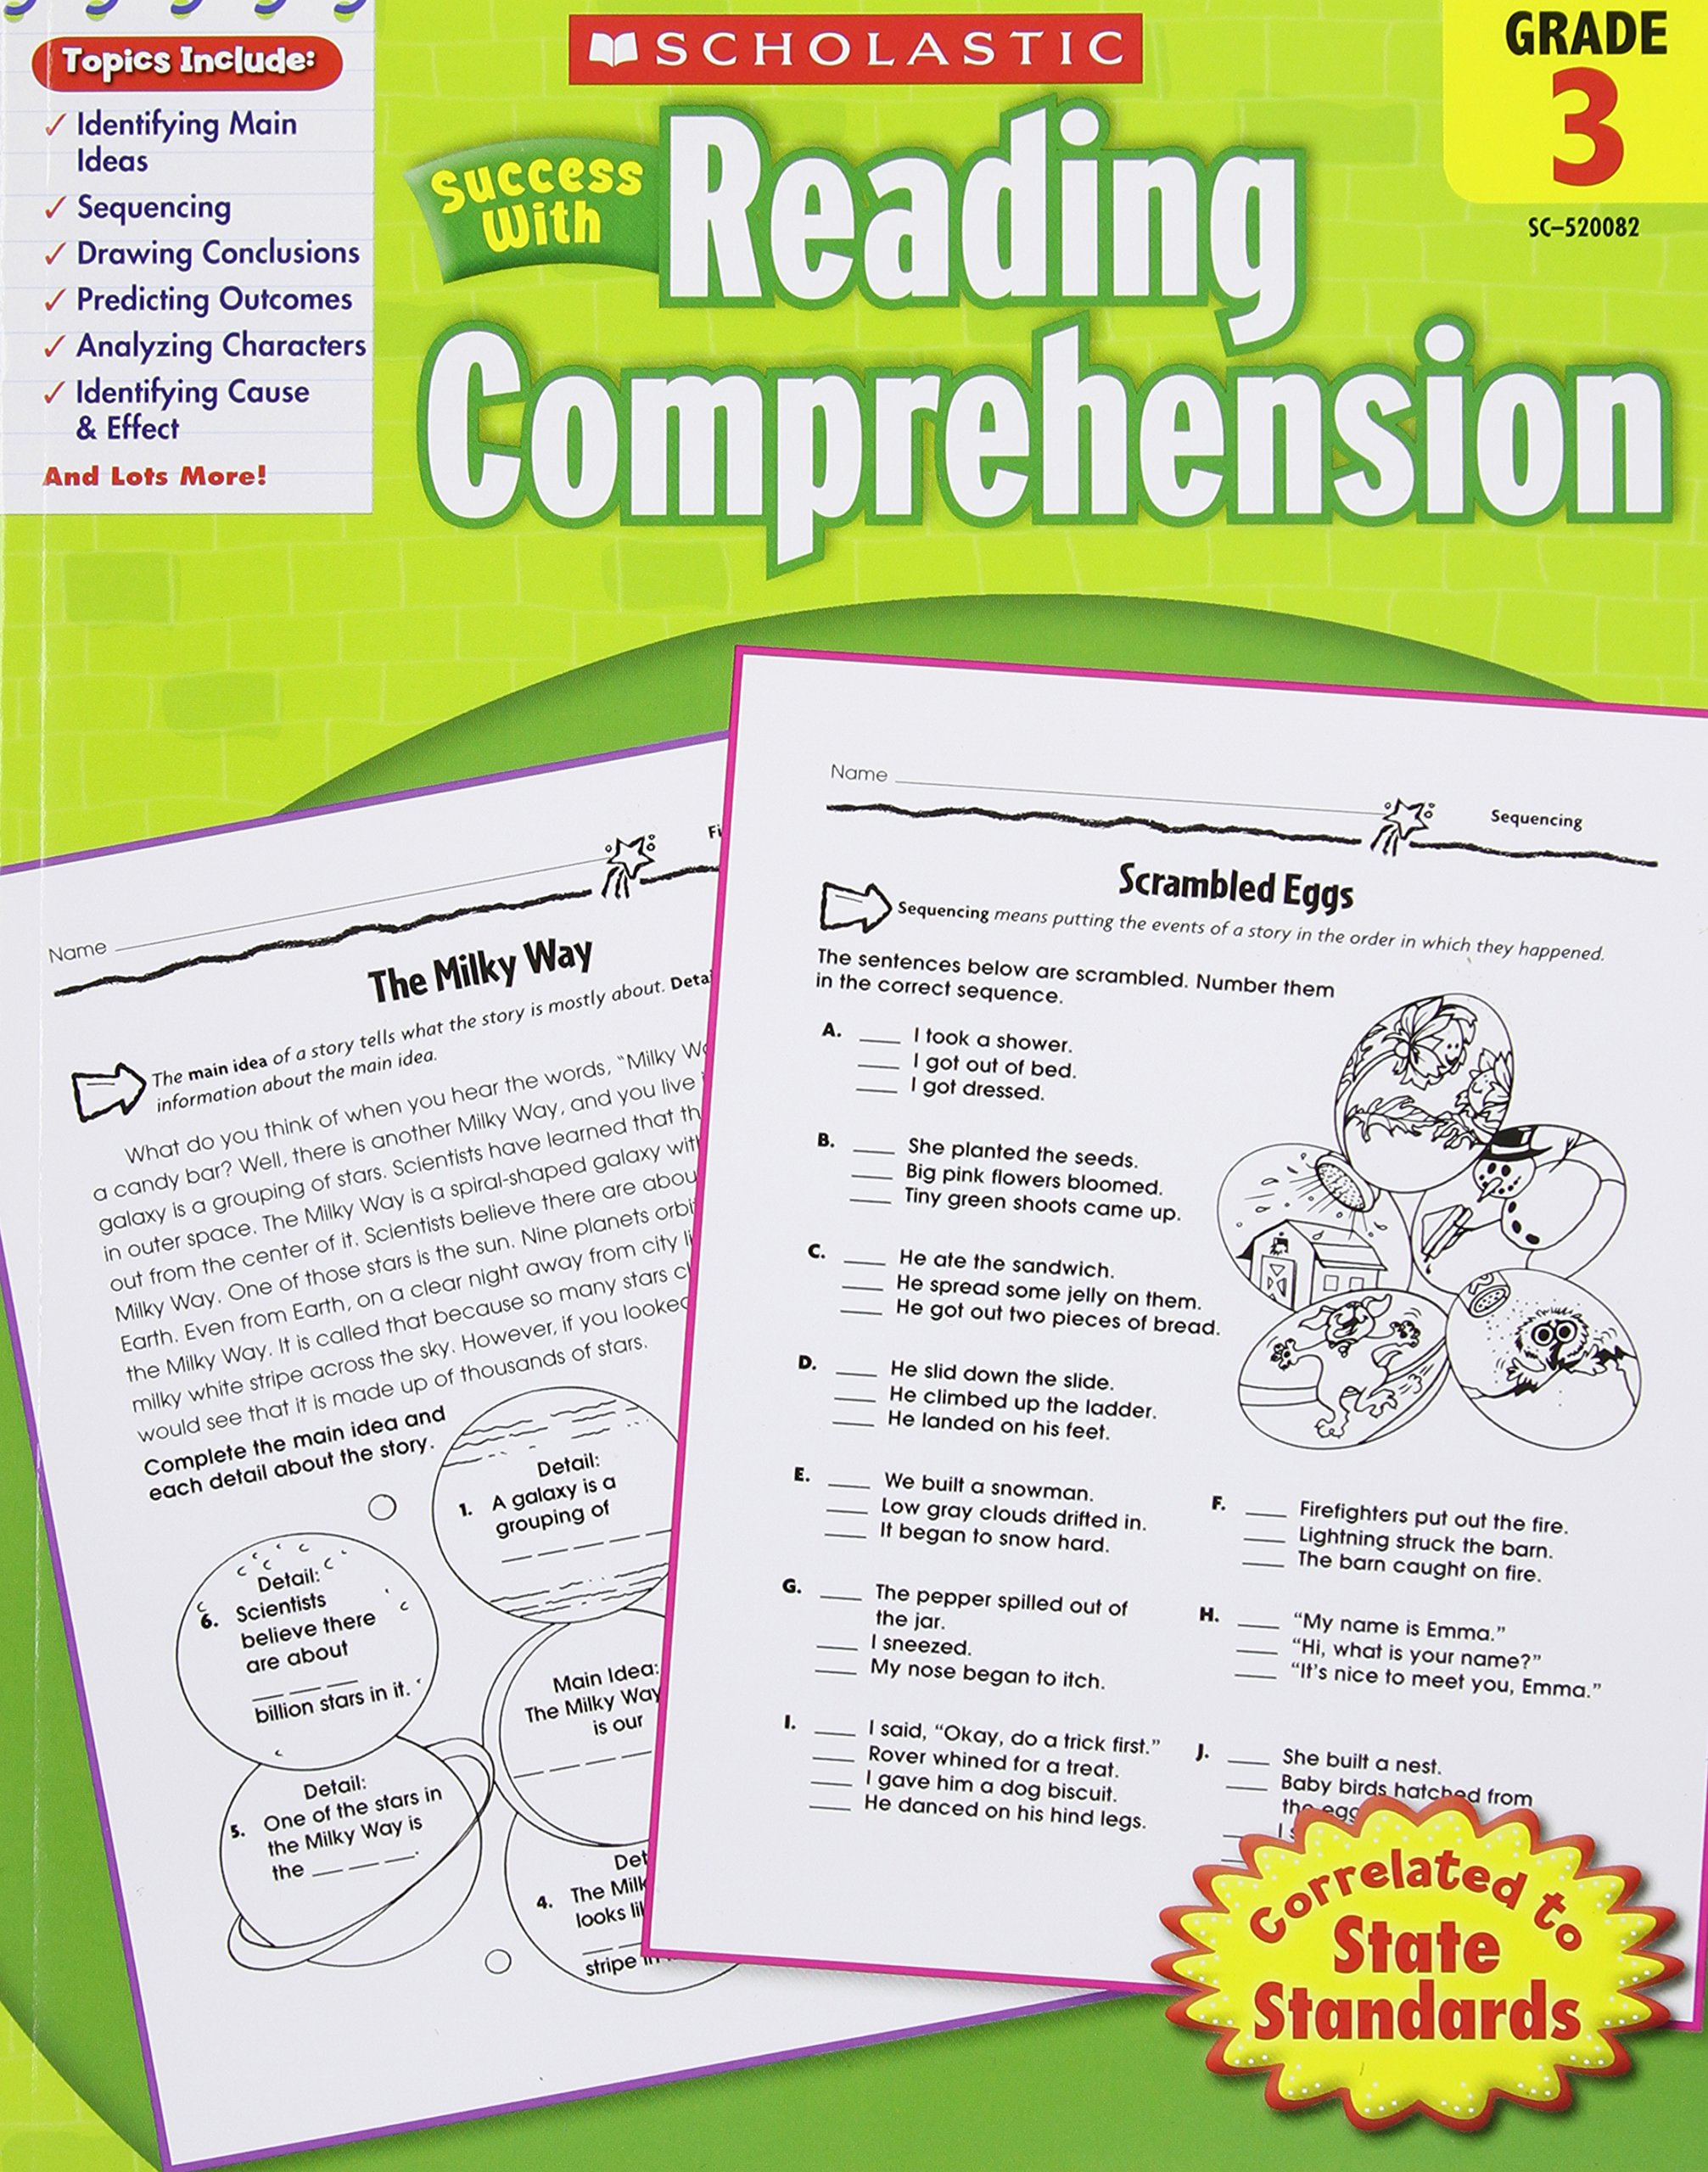 Worksheet Unseen Comprehension For Grade 3 buy scholastic success with reading comprehension grade 3 book online at low prices in india co